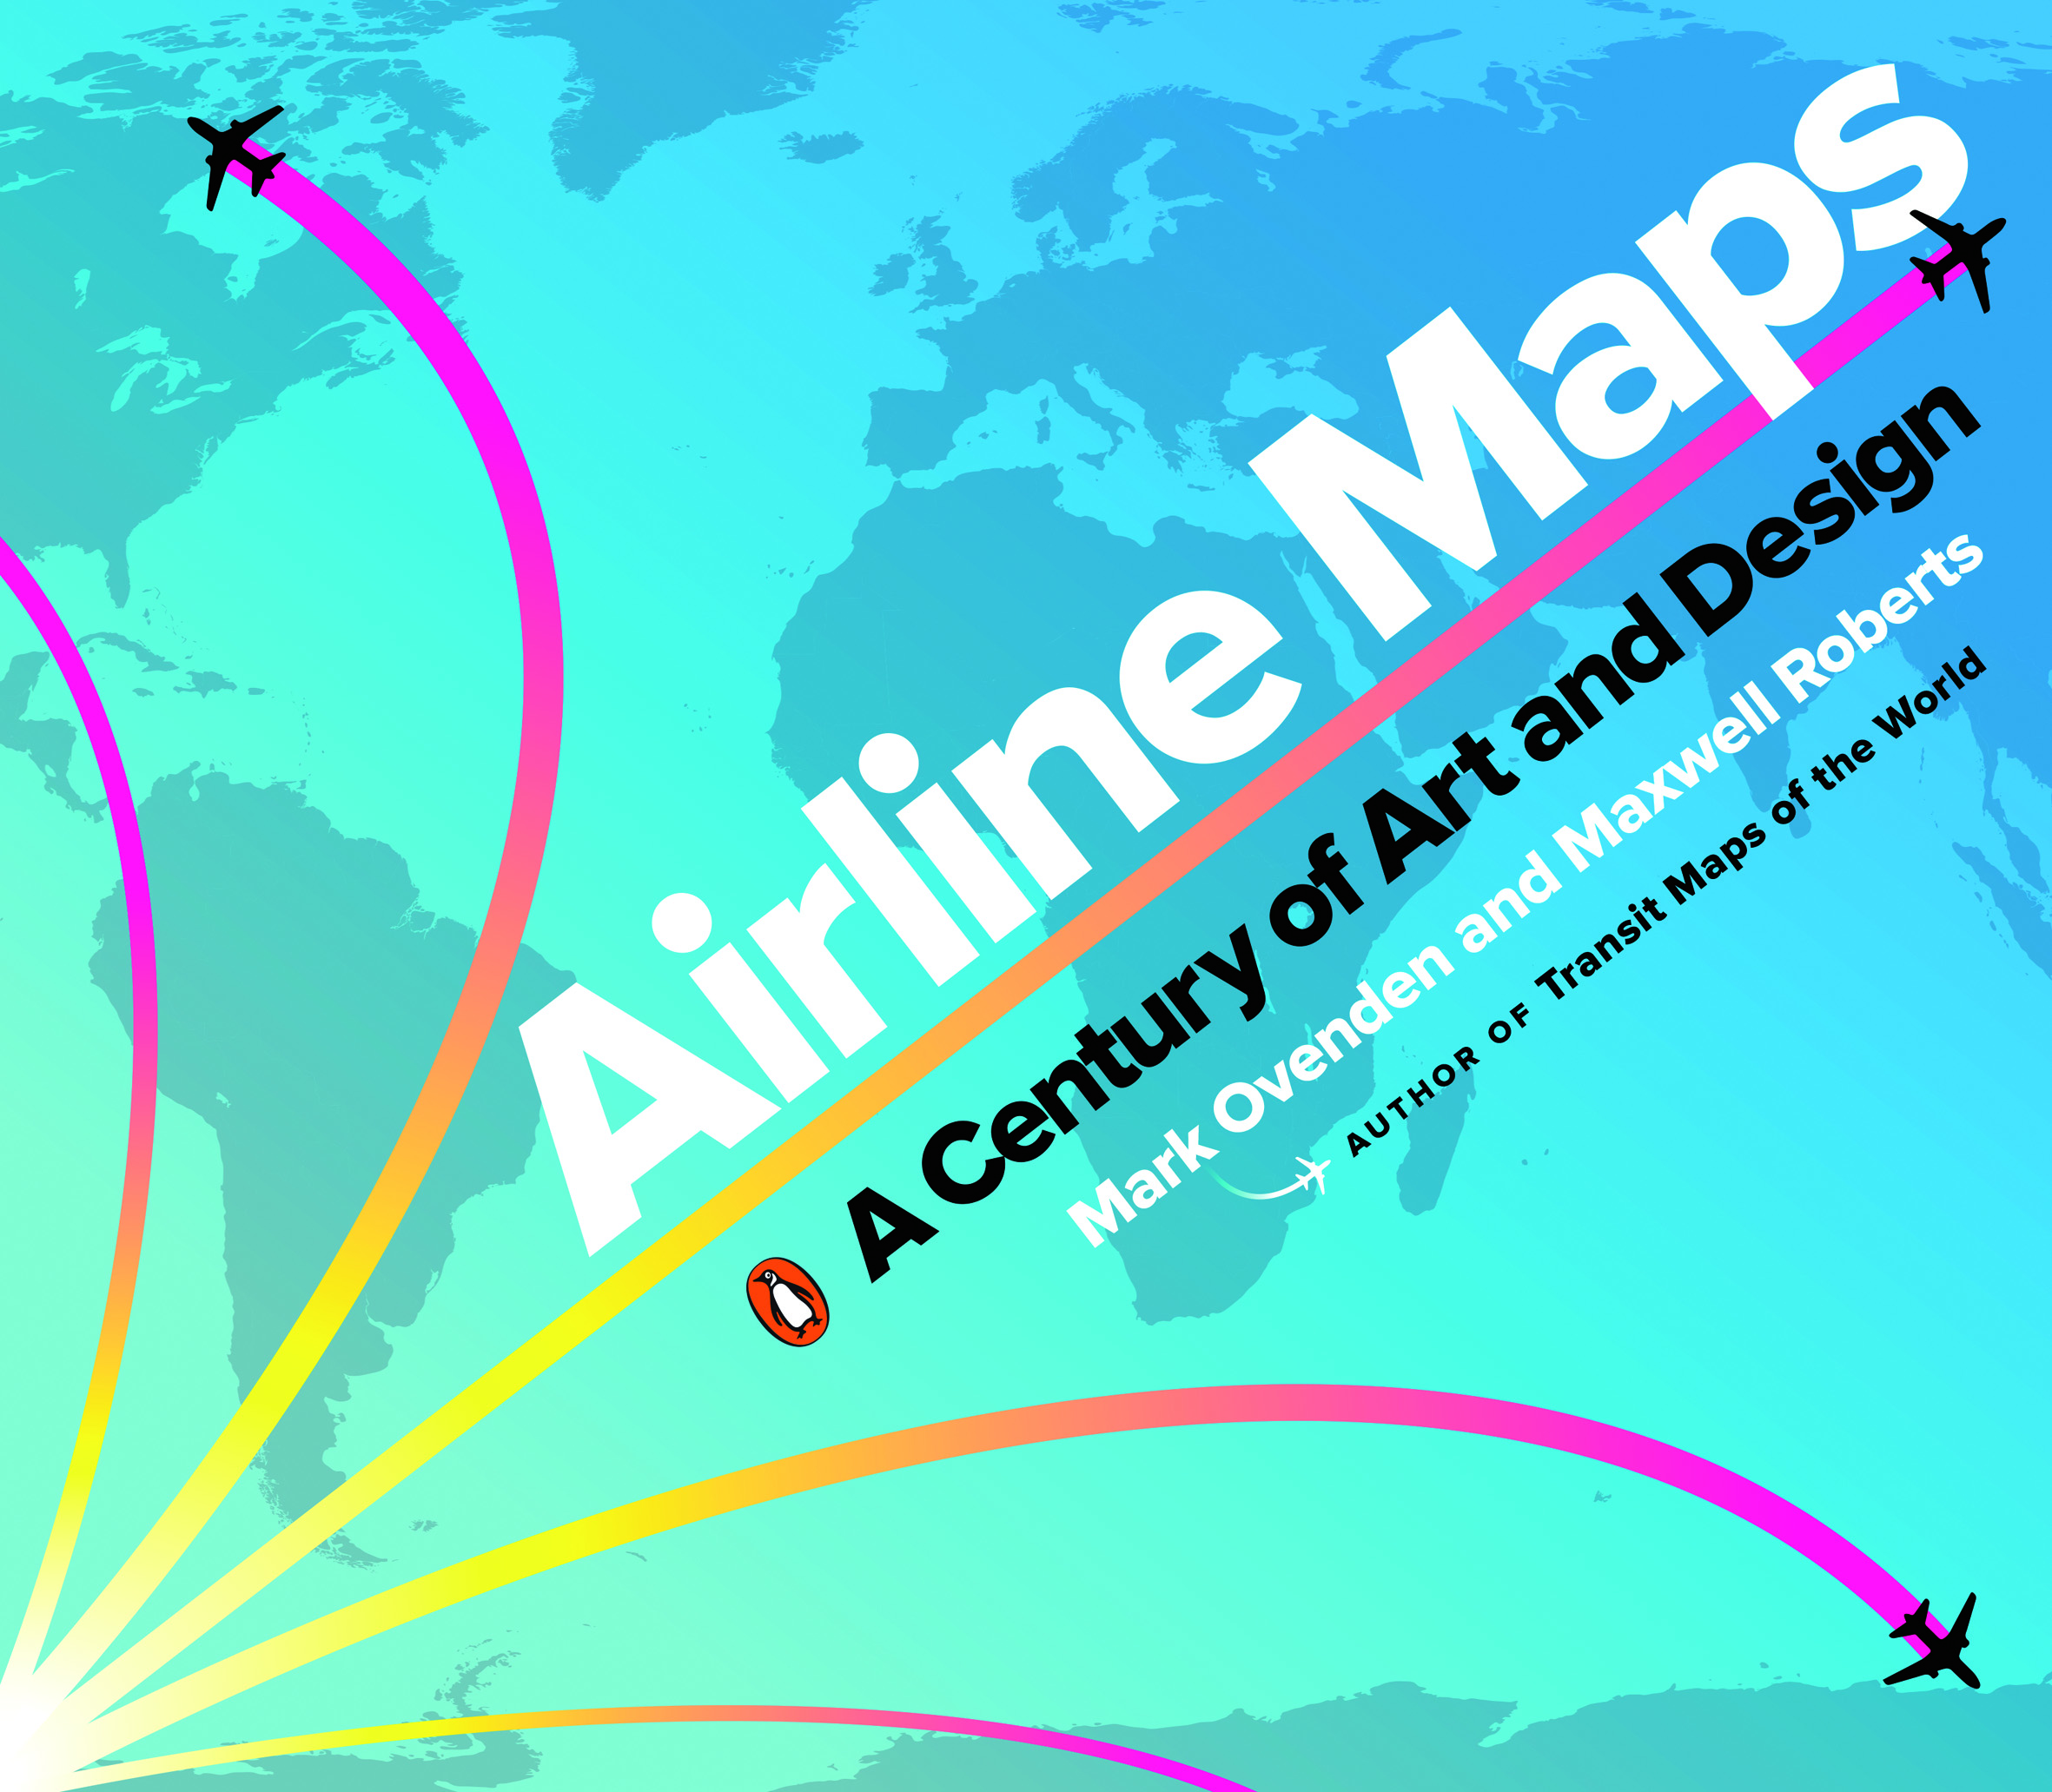 Cover of Airline Maps publication (2019) showing multi-coloured vapour trails against a blue wash map showing Africa, Europe and North/South America